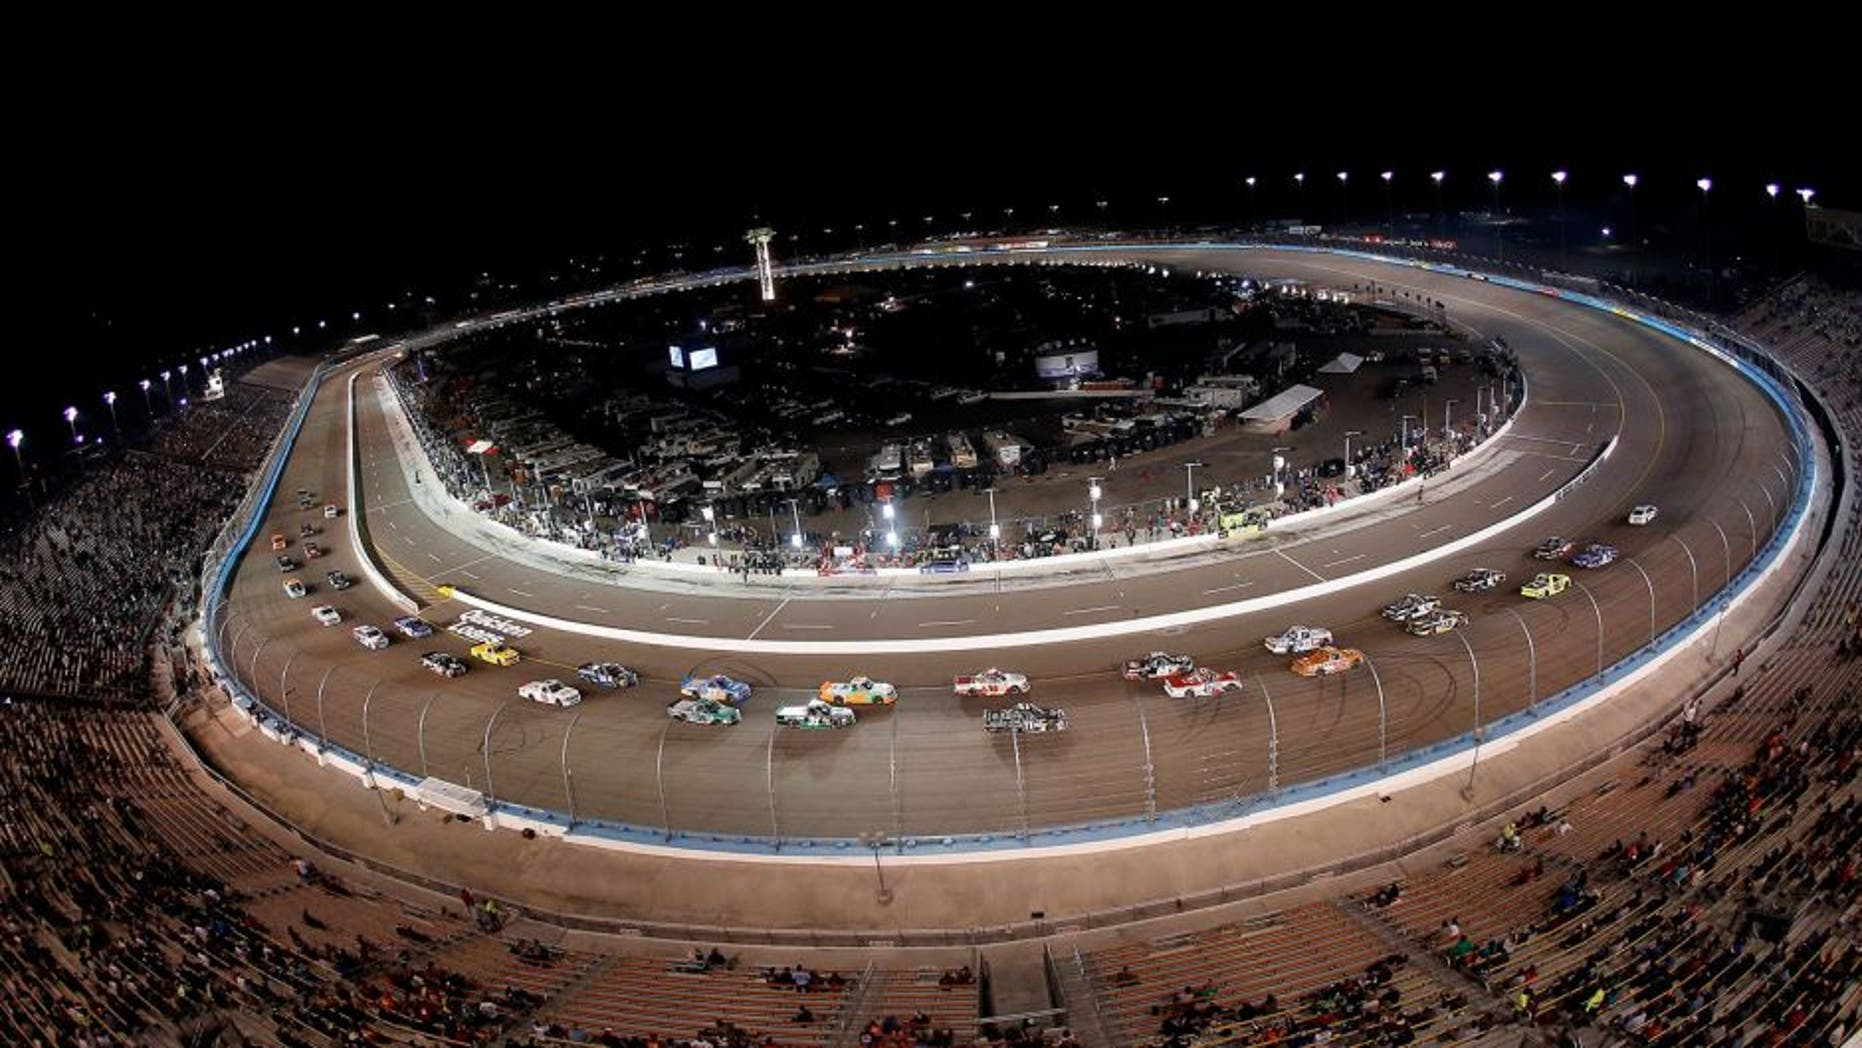 AVONDALE, AZ - NOVEMBER 13: A general view of race action during the NASCAR Camping World Truck Series Lucas Oil 150 at Phoenix International Raceway on November 13, 2015 in Avondale, Arizona. (Photo by Christian Petersen/Getty Images)